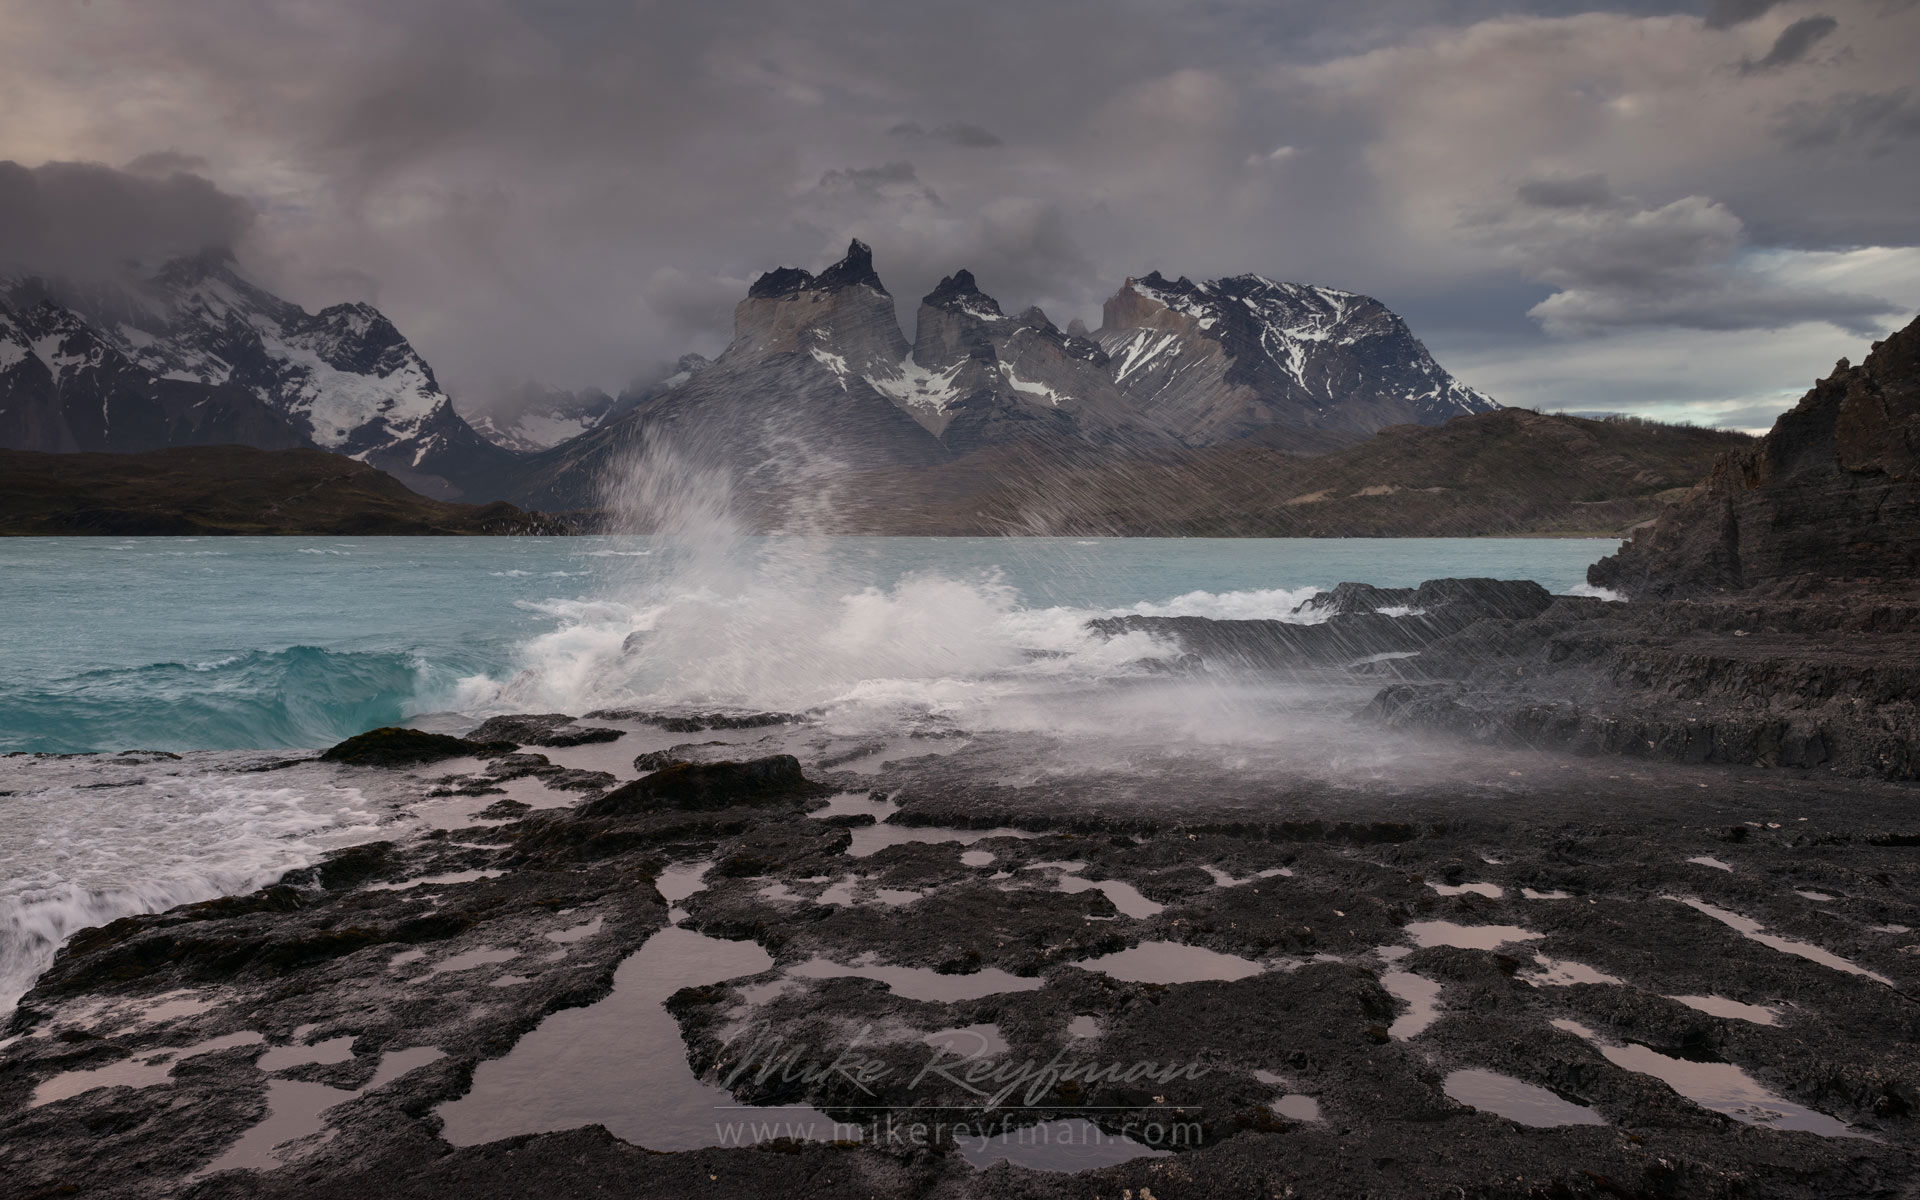 Storm on Lago Pehoe. Cordillera del Paine. Torres del Paine National Park, Ultima Esperanza Province, Magallanes and Antartica Chilena Region XII, Patagonia, Chile. - Torres-Del-Paine-National-Park-Patagonia-Chile - Mike Reyfman Photography